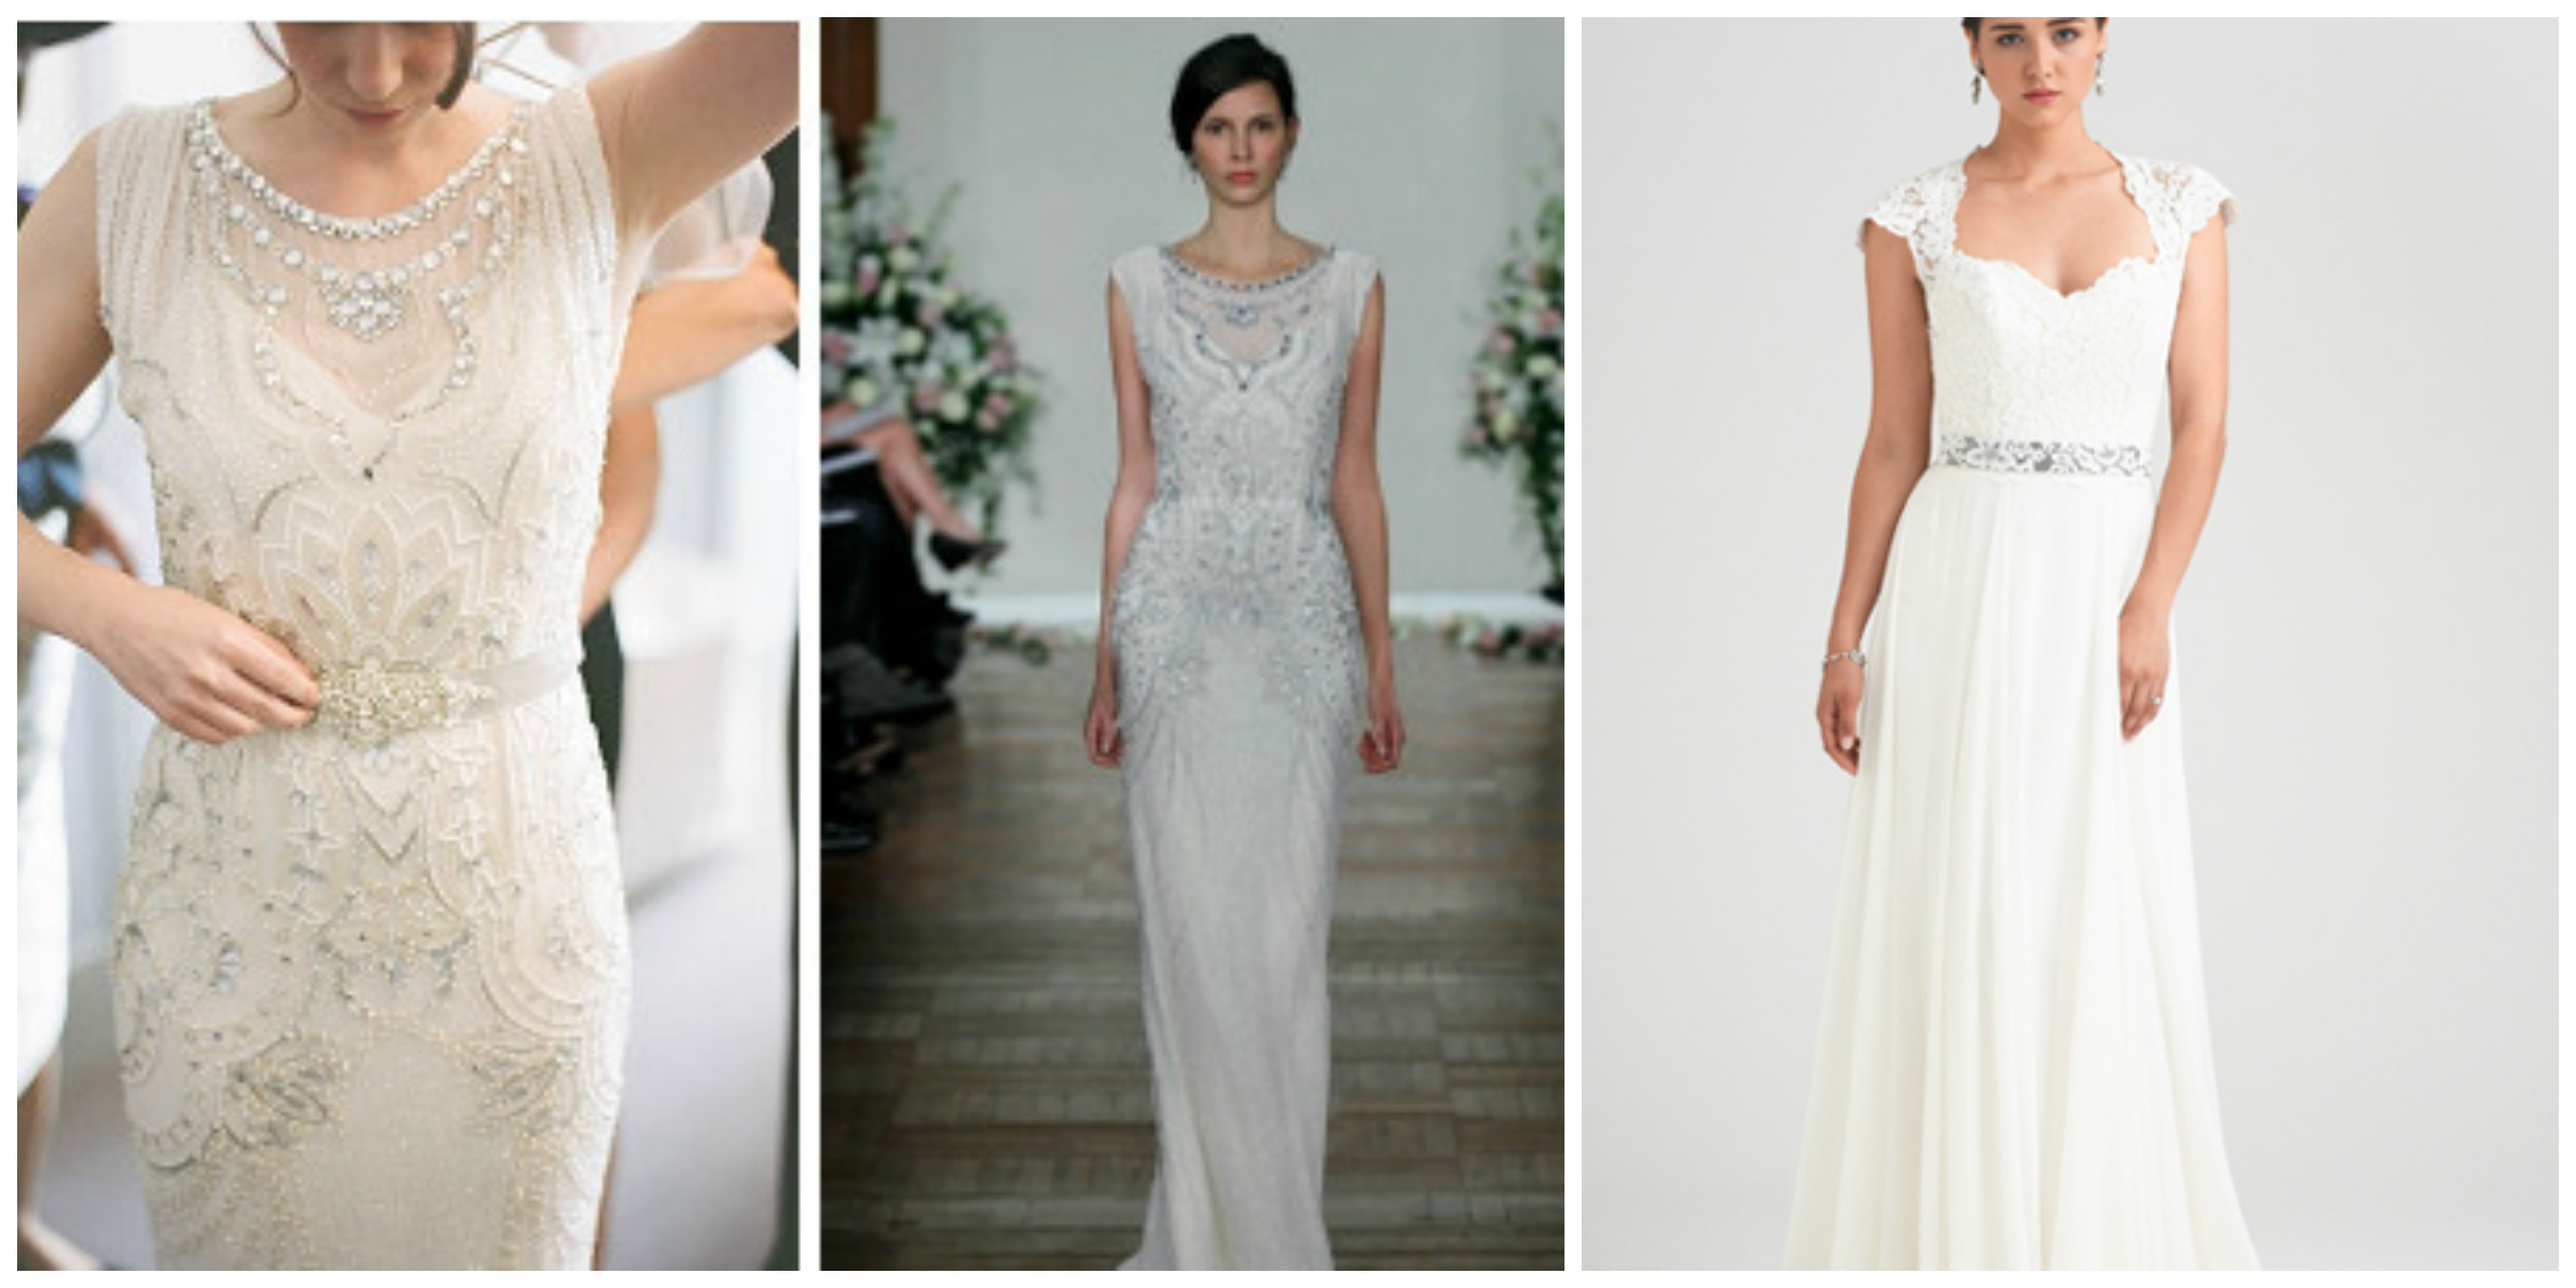 wedding dresses | The Utter Blog